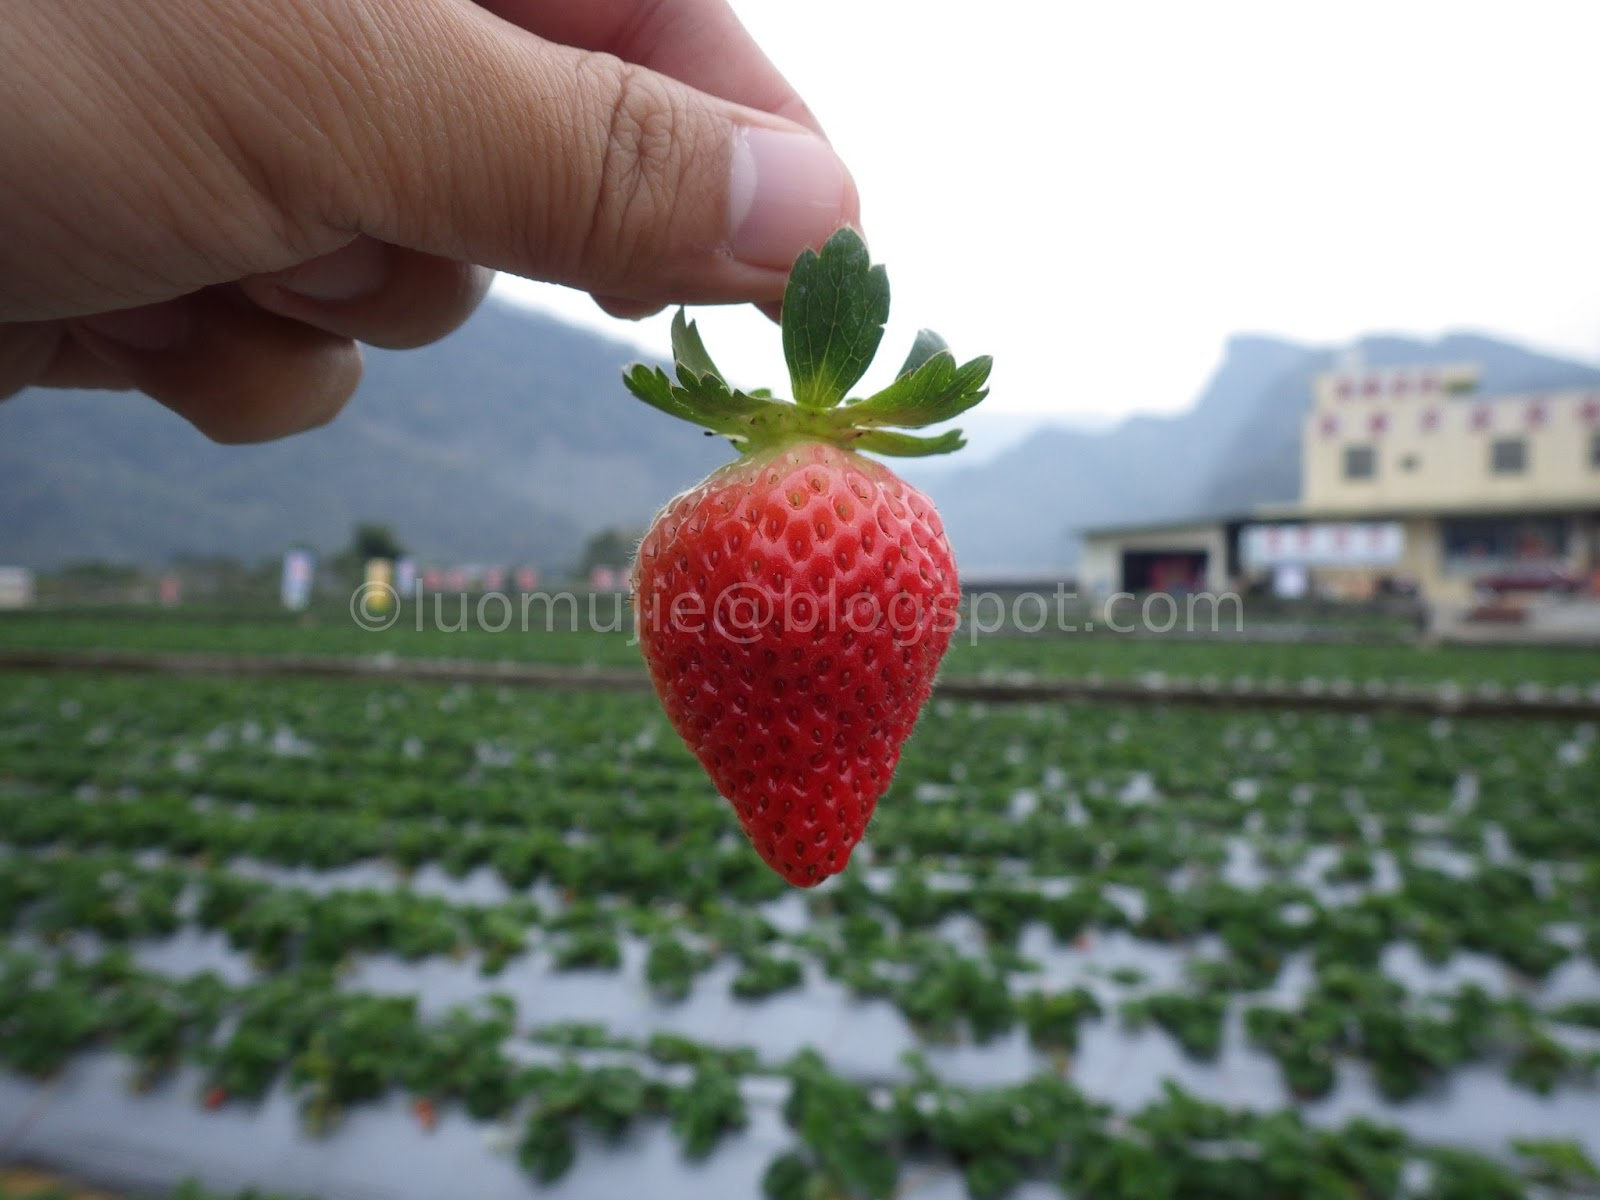 Miaoli Dahu strawberry picking